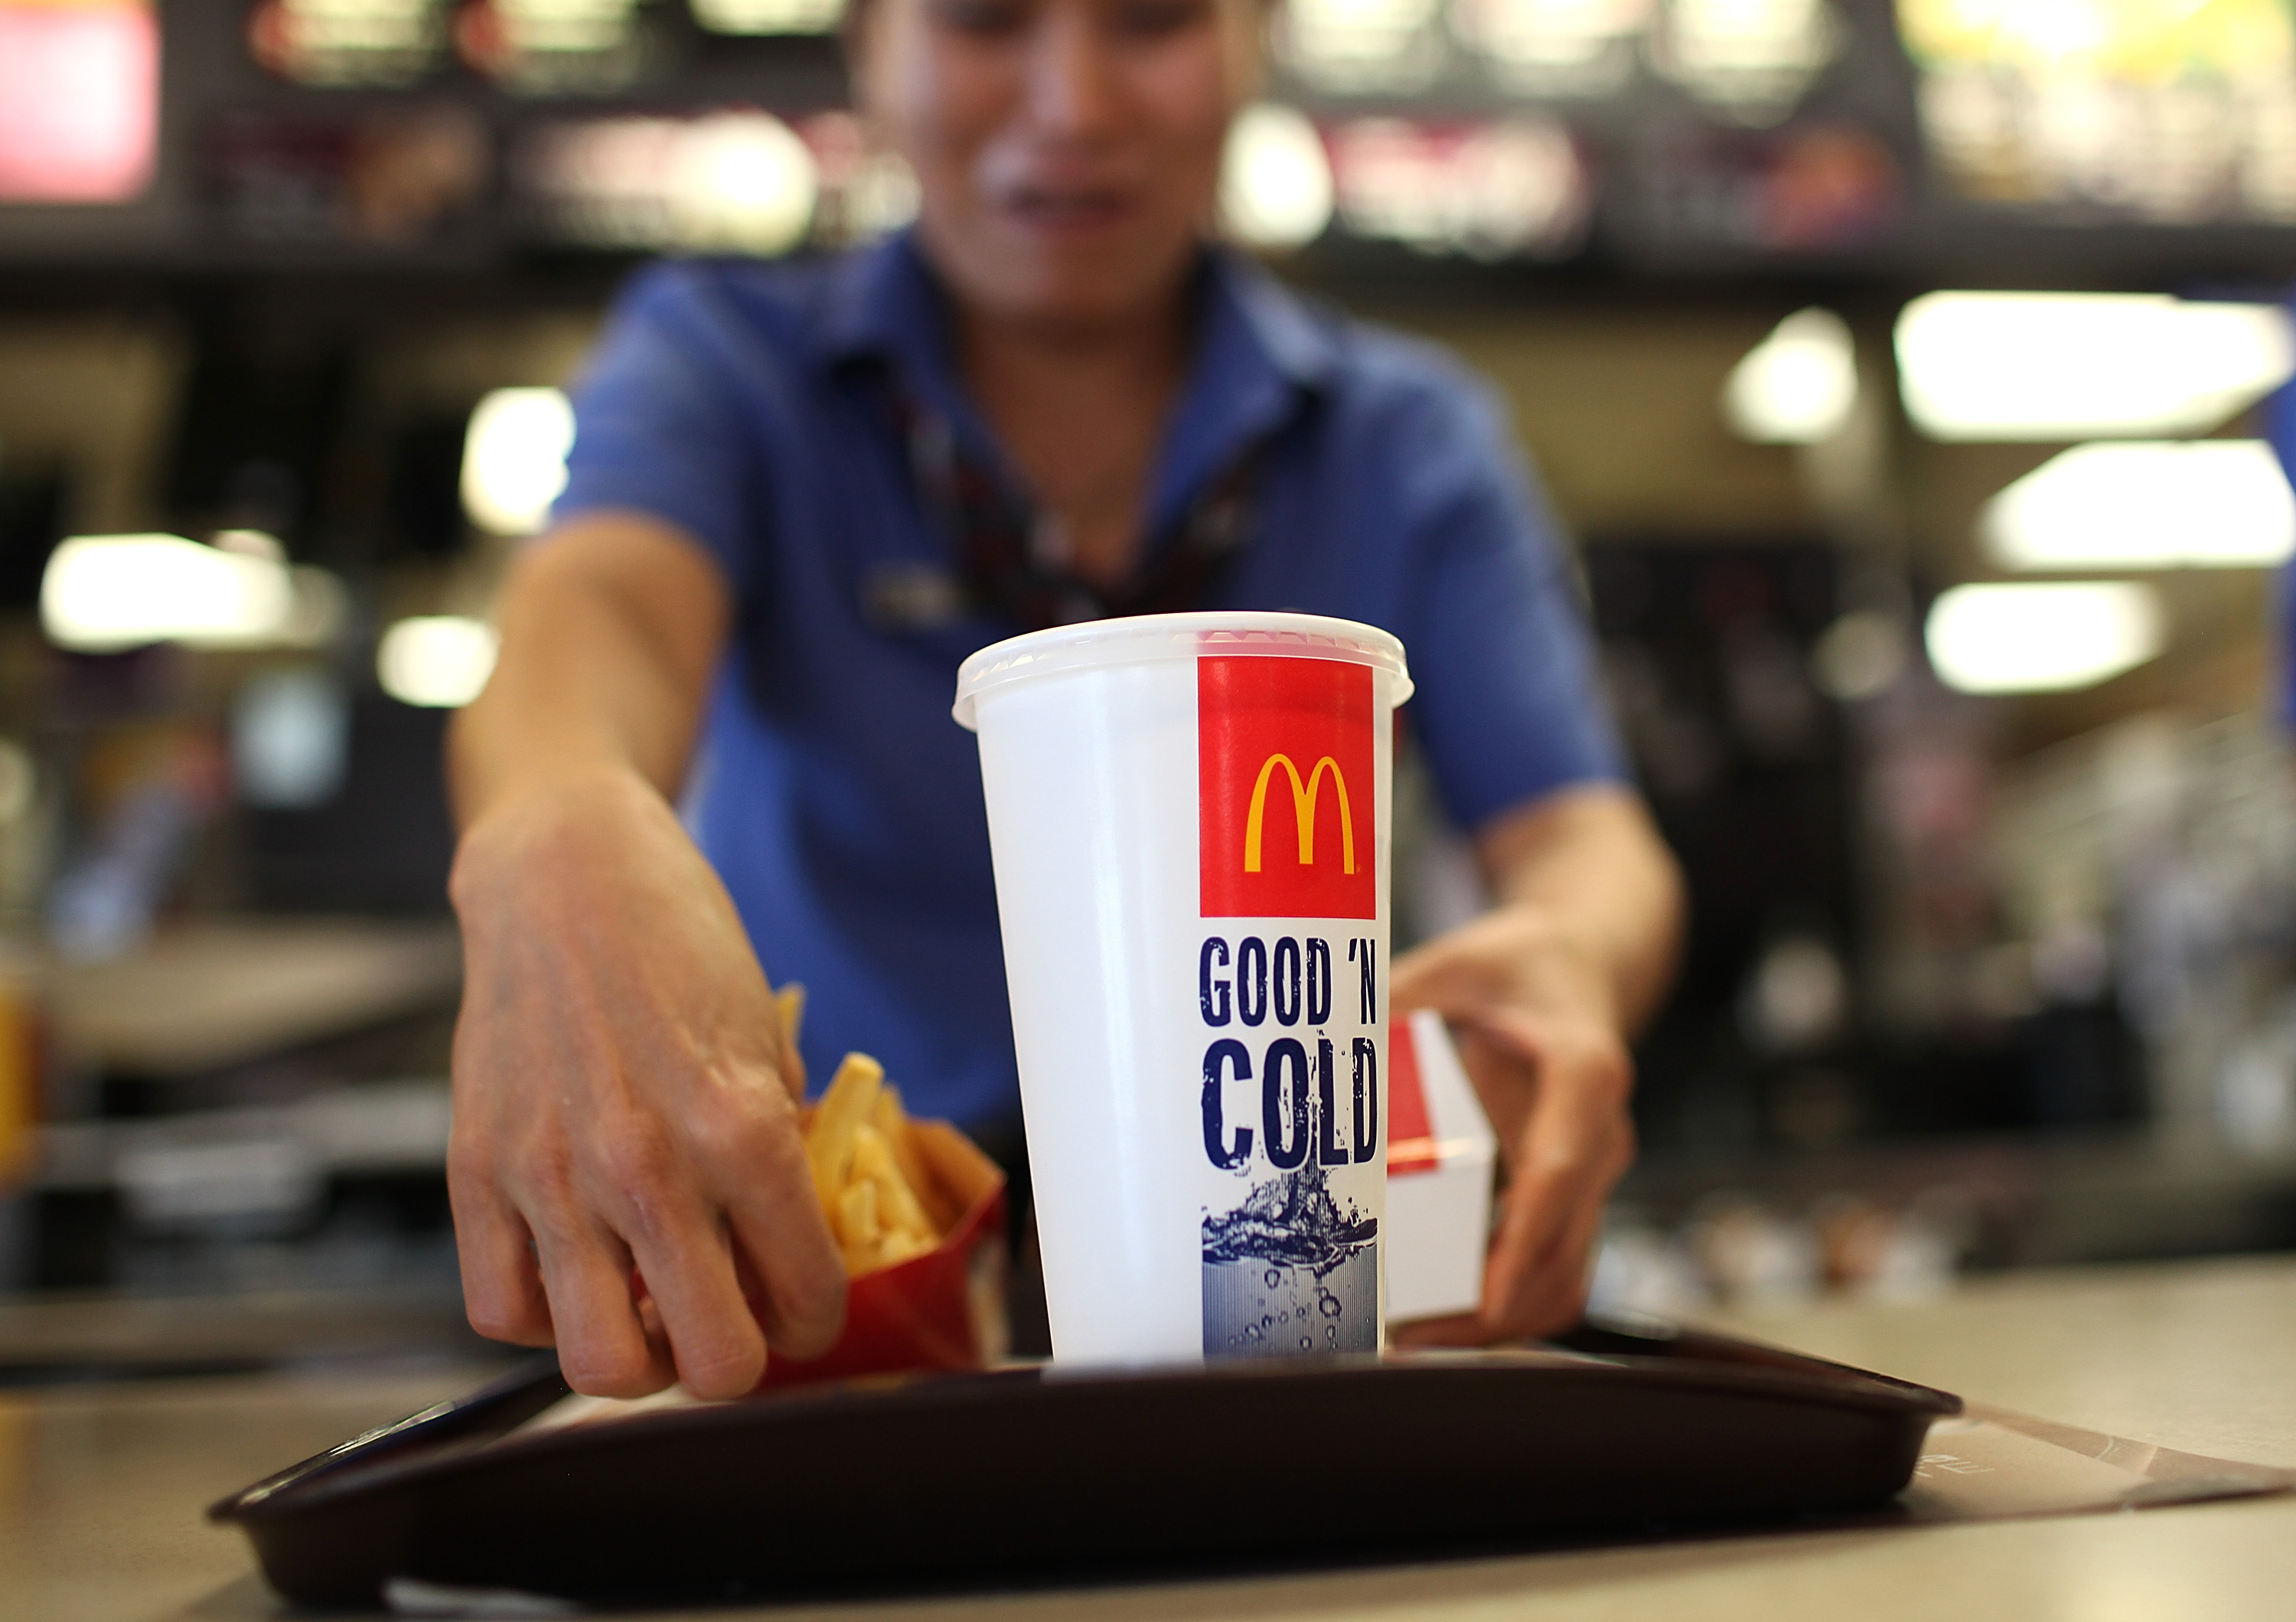 Fast Food Value Menu — Too Cheap for Some?